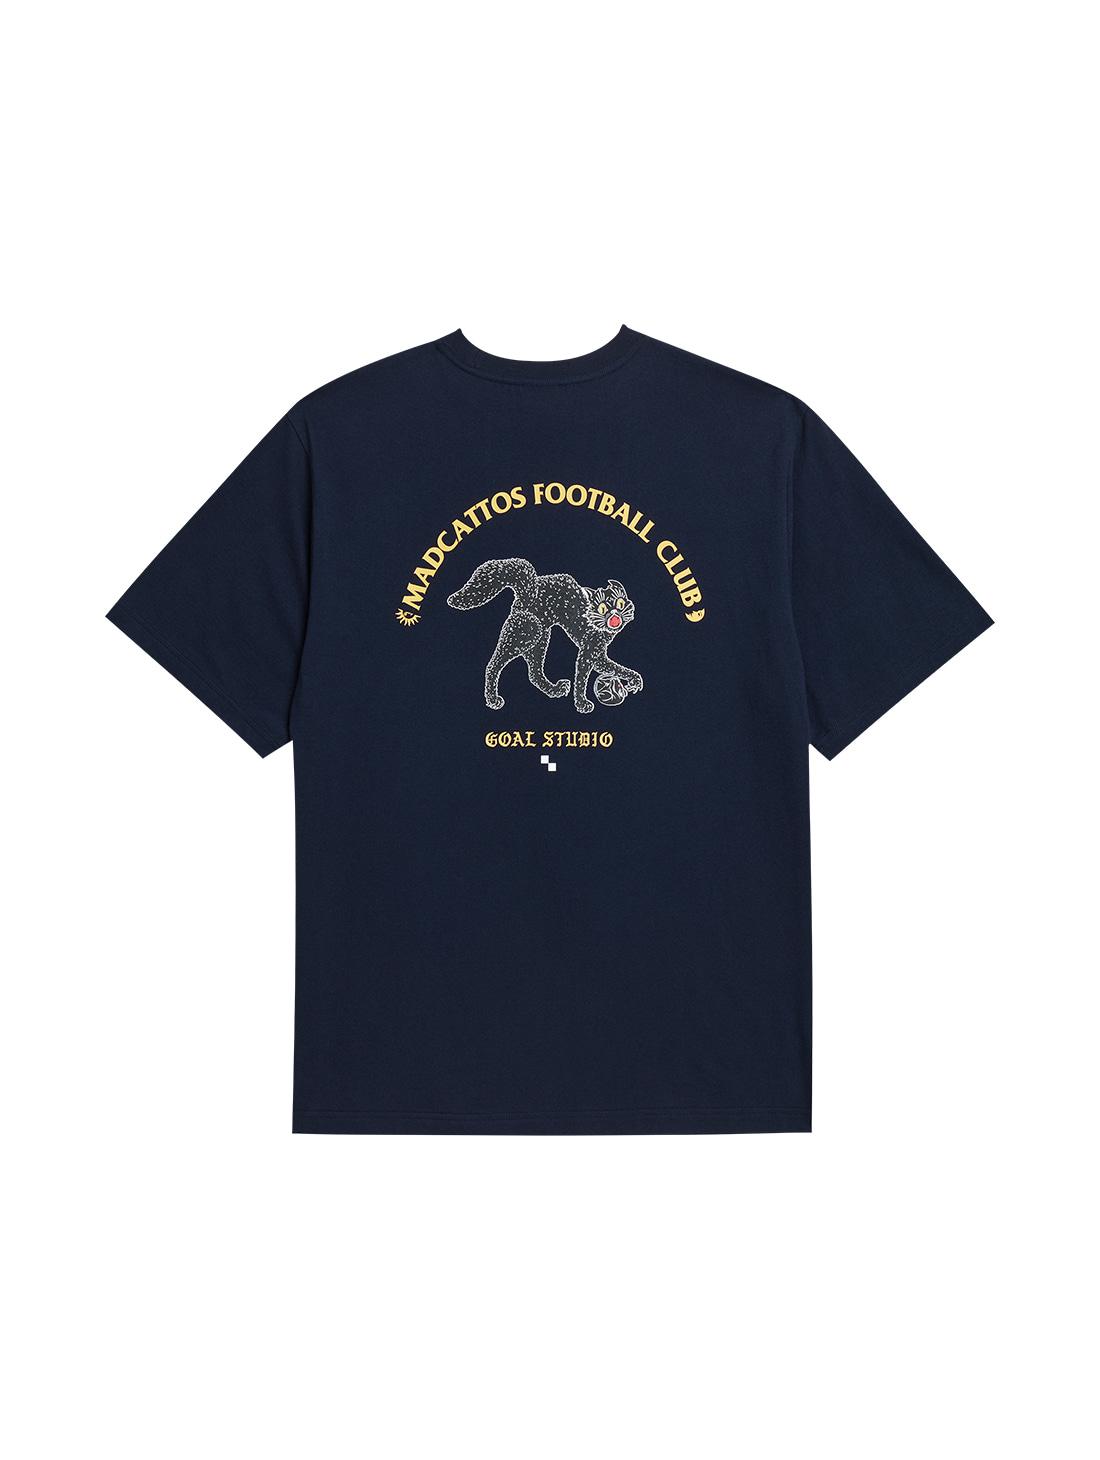 MC GRAPHIC TEE - NAVY